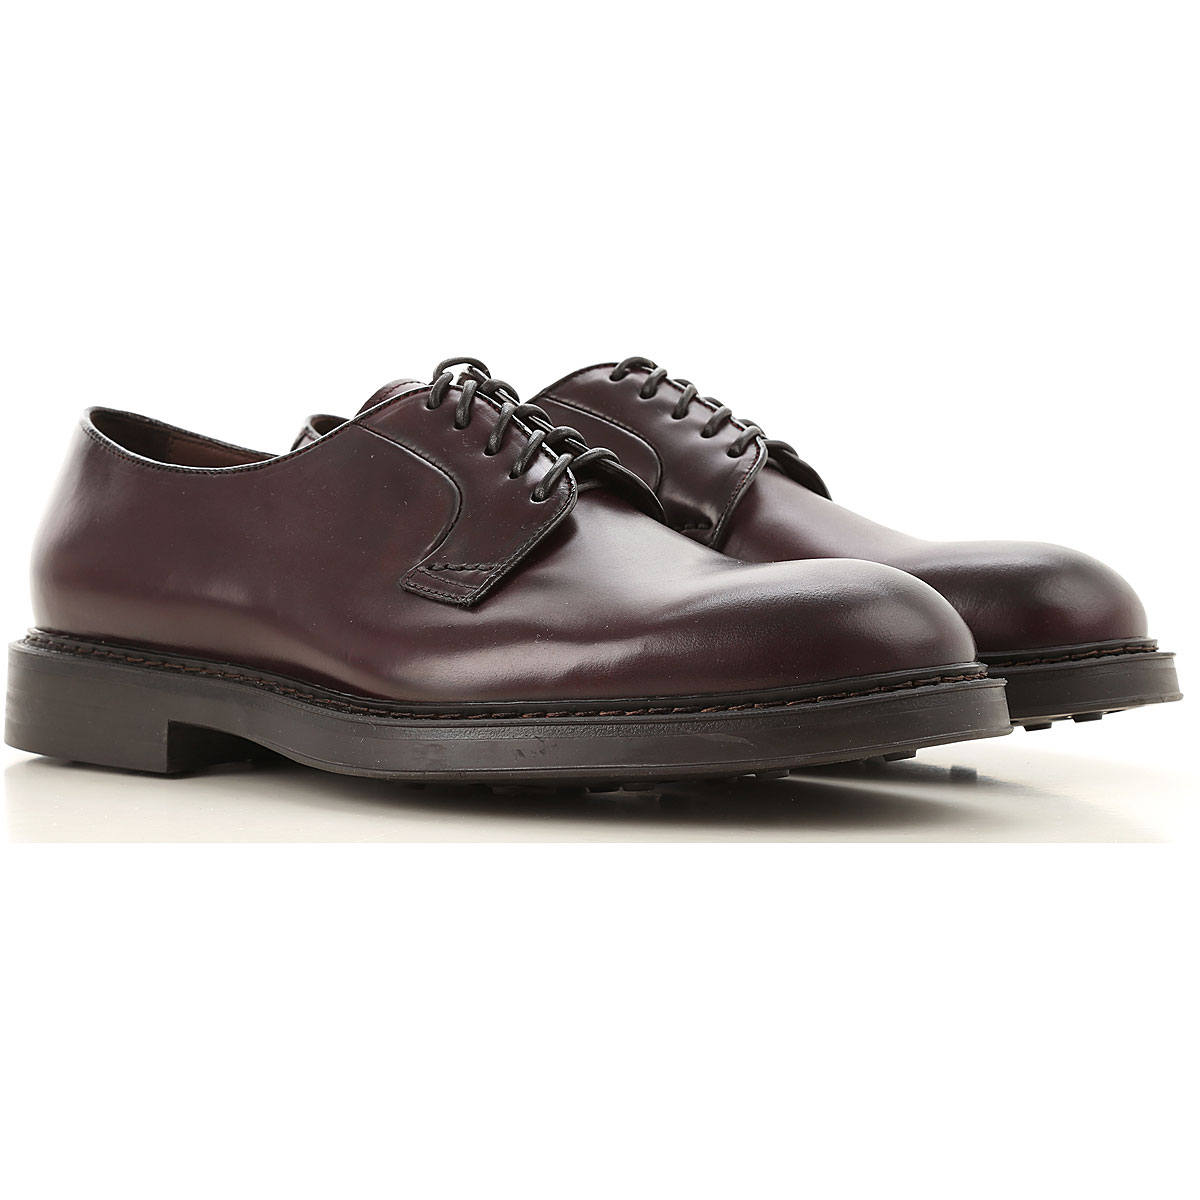 Doucals Lace Up Shoes for Men Oxfords, Derbies and Brogues On Sale, Dark Bordeaux, Leather, 2019, 10 10.25 6.5 7 7.5 8.5 9